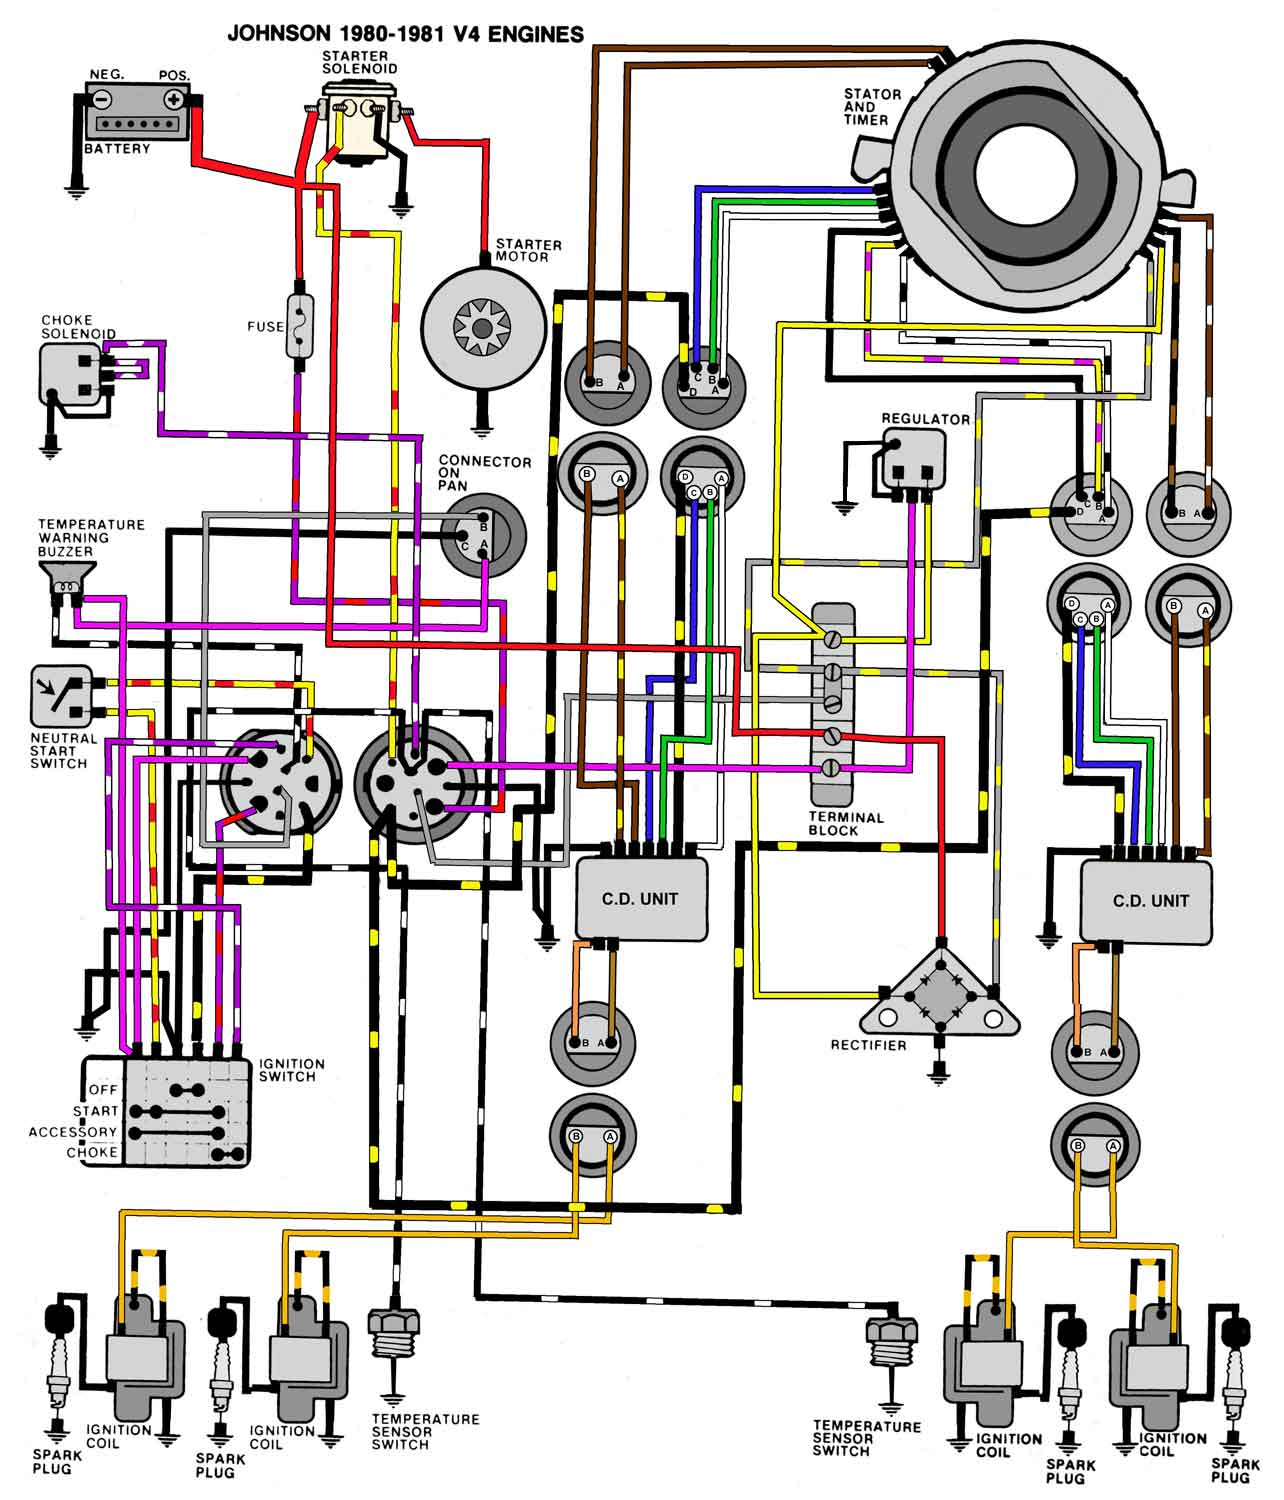 WRG-5461] 90 Hp Johnson Outboard Wiring Diagram Schematic